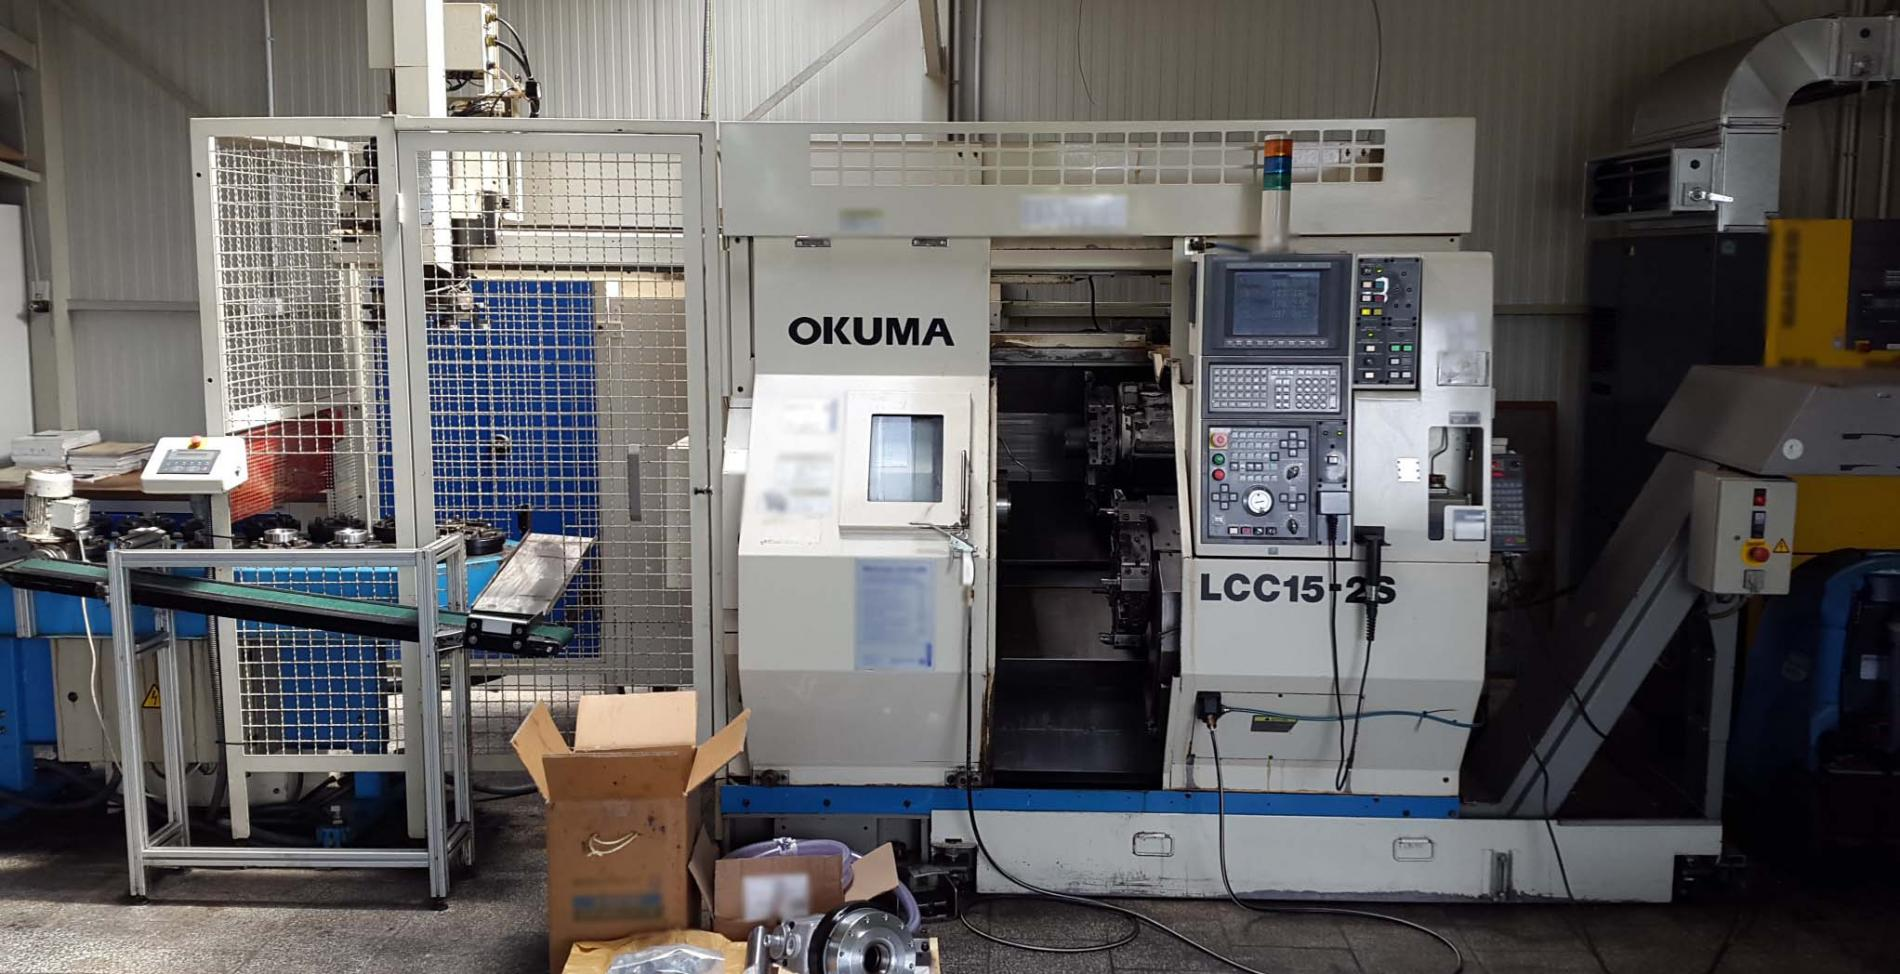 OKUMA LCC15-2S used for sale price #9052054, 2003 > buy from CAE